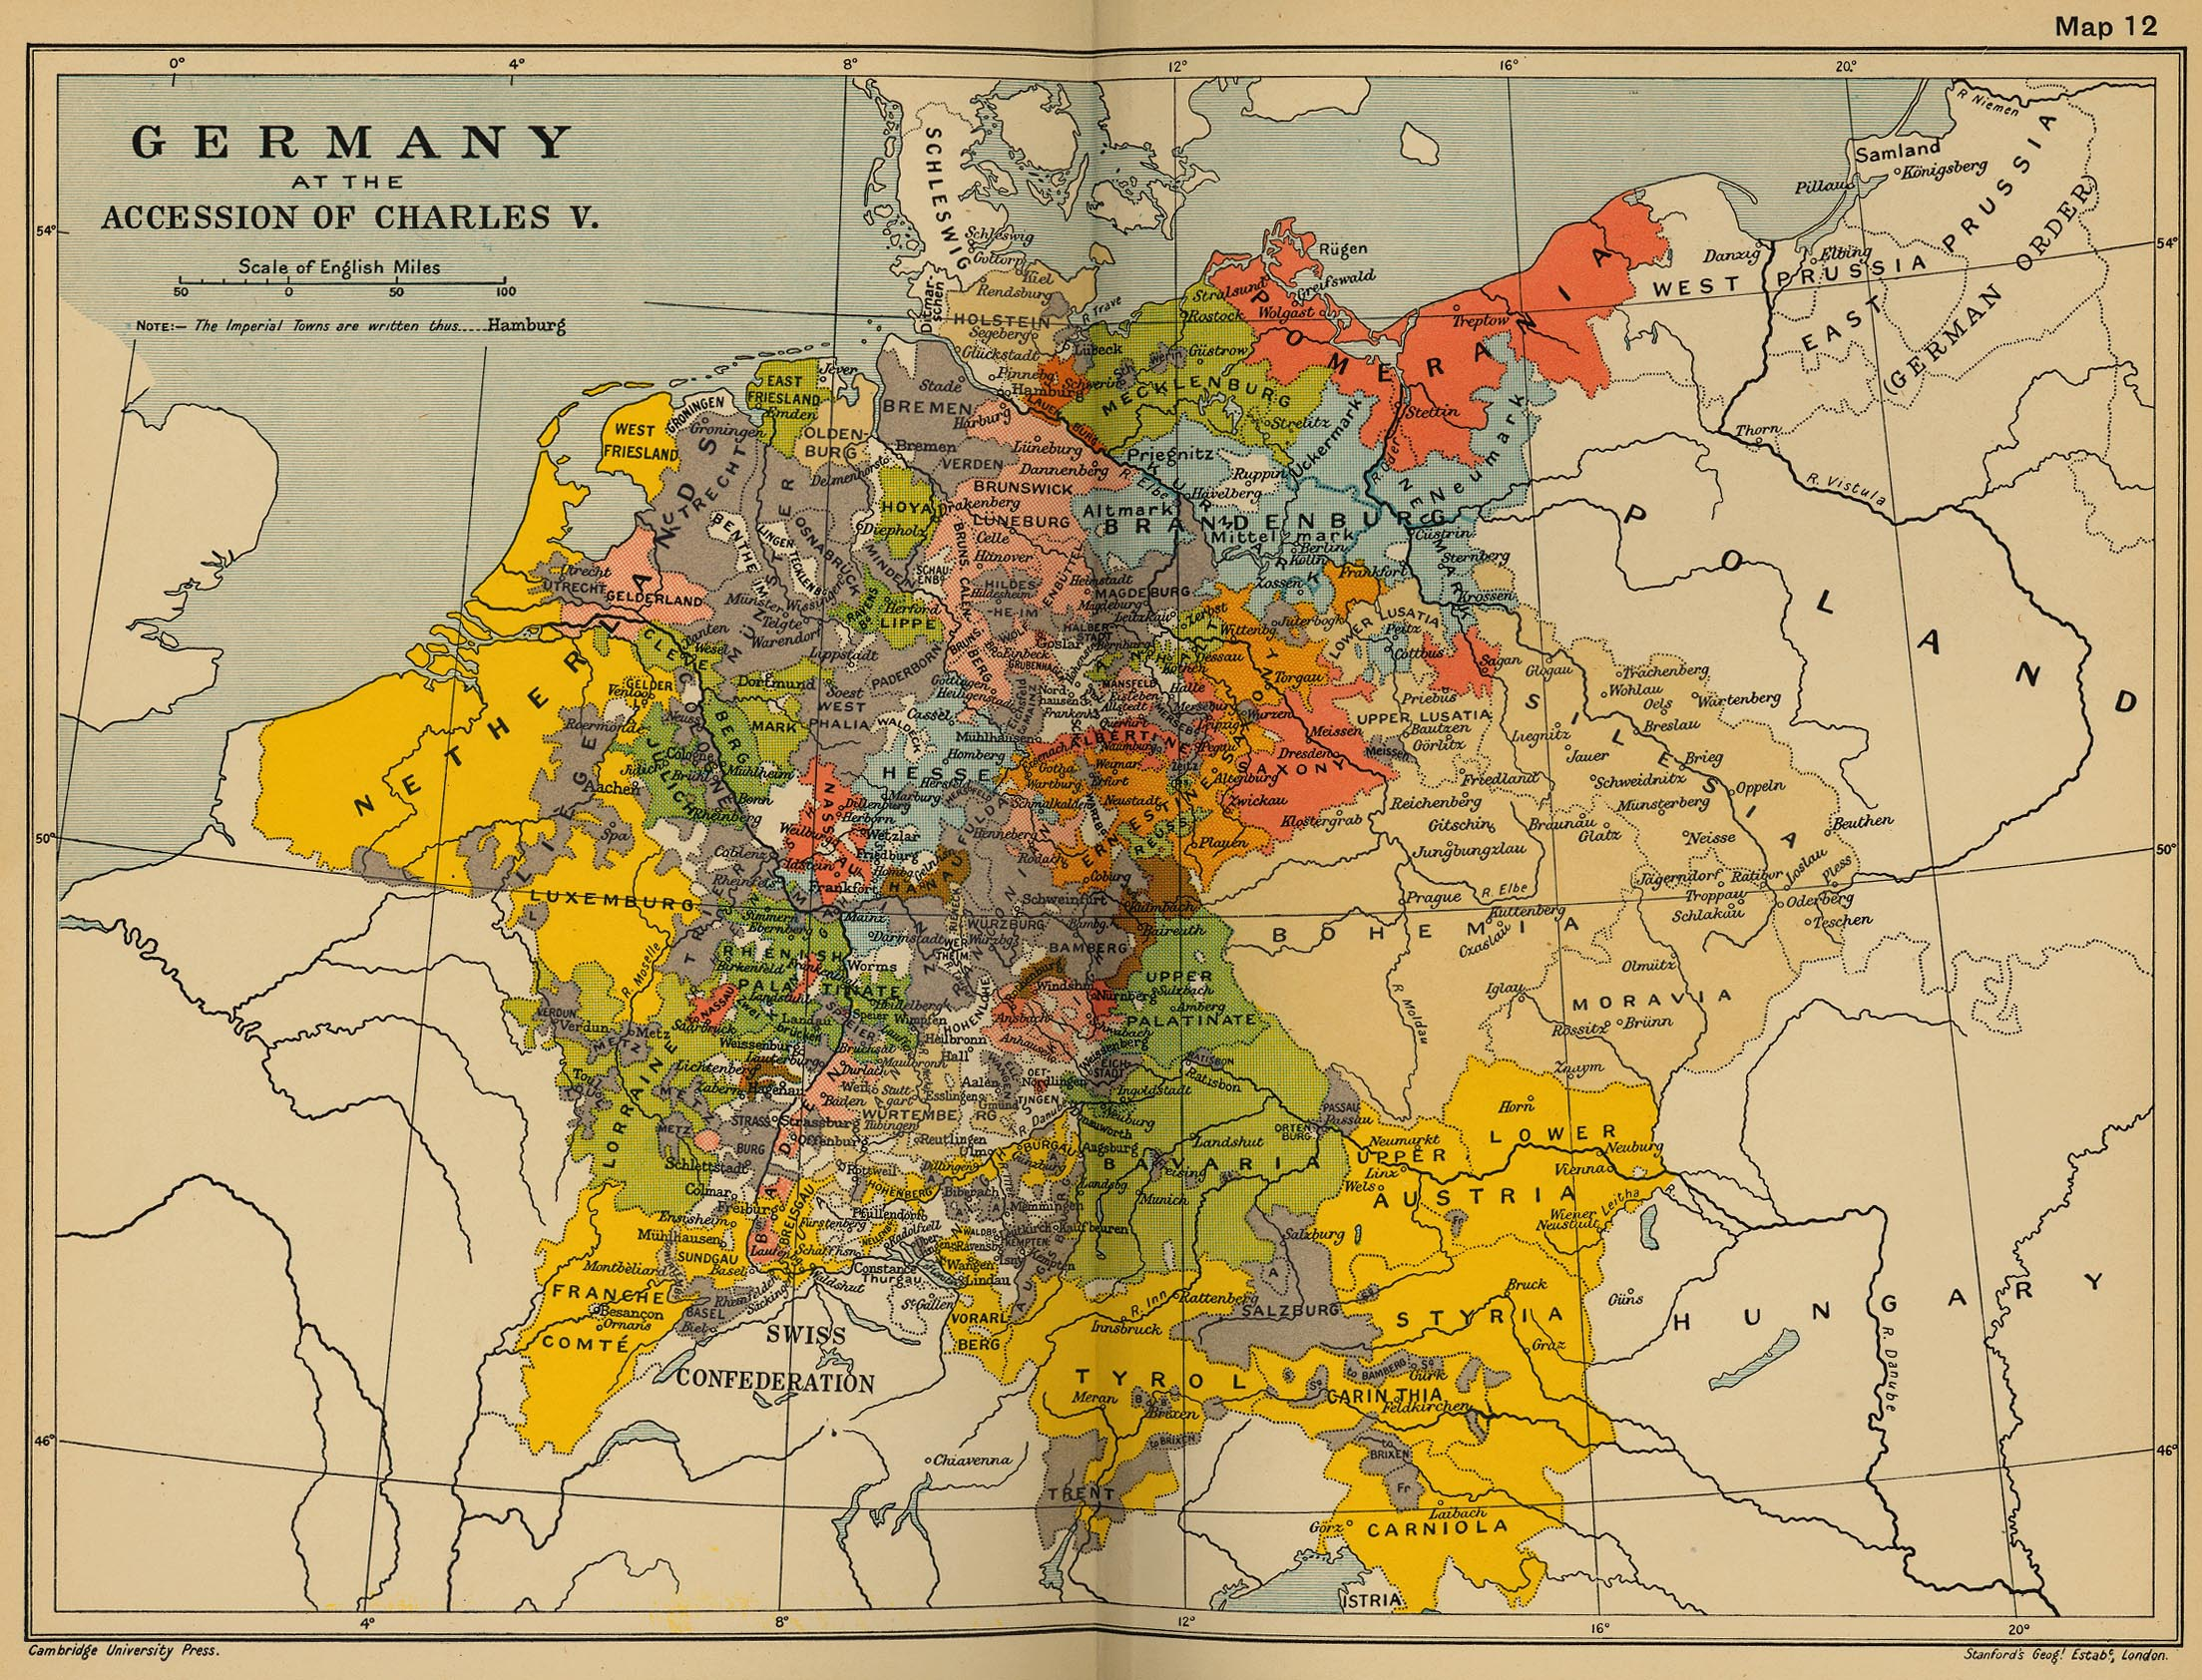 Maps Update 10001100 Show Me a Map of Germany Map of Germany – Show Me the Map of Germany